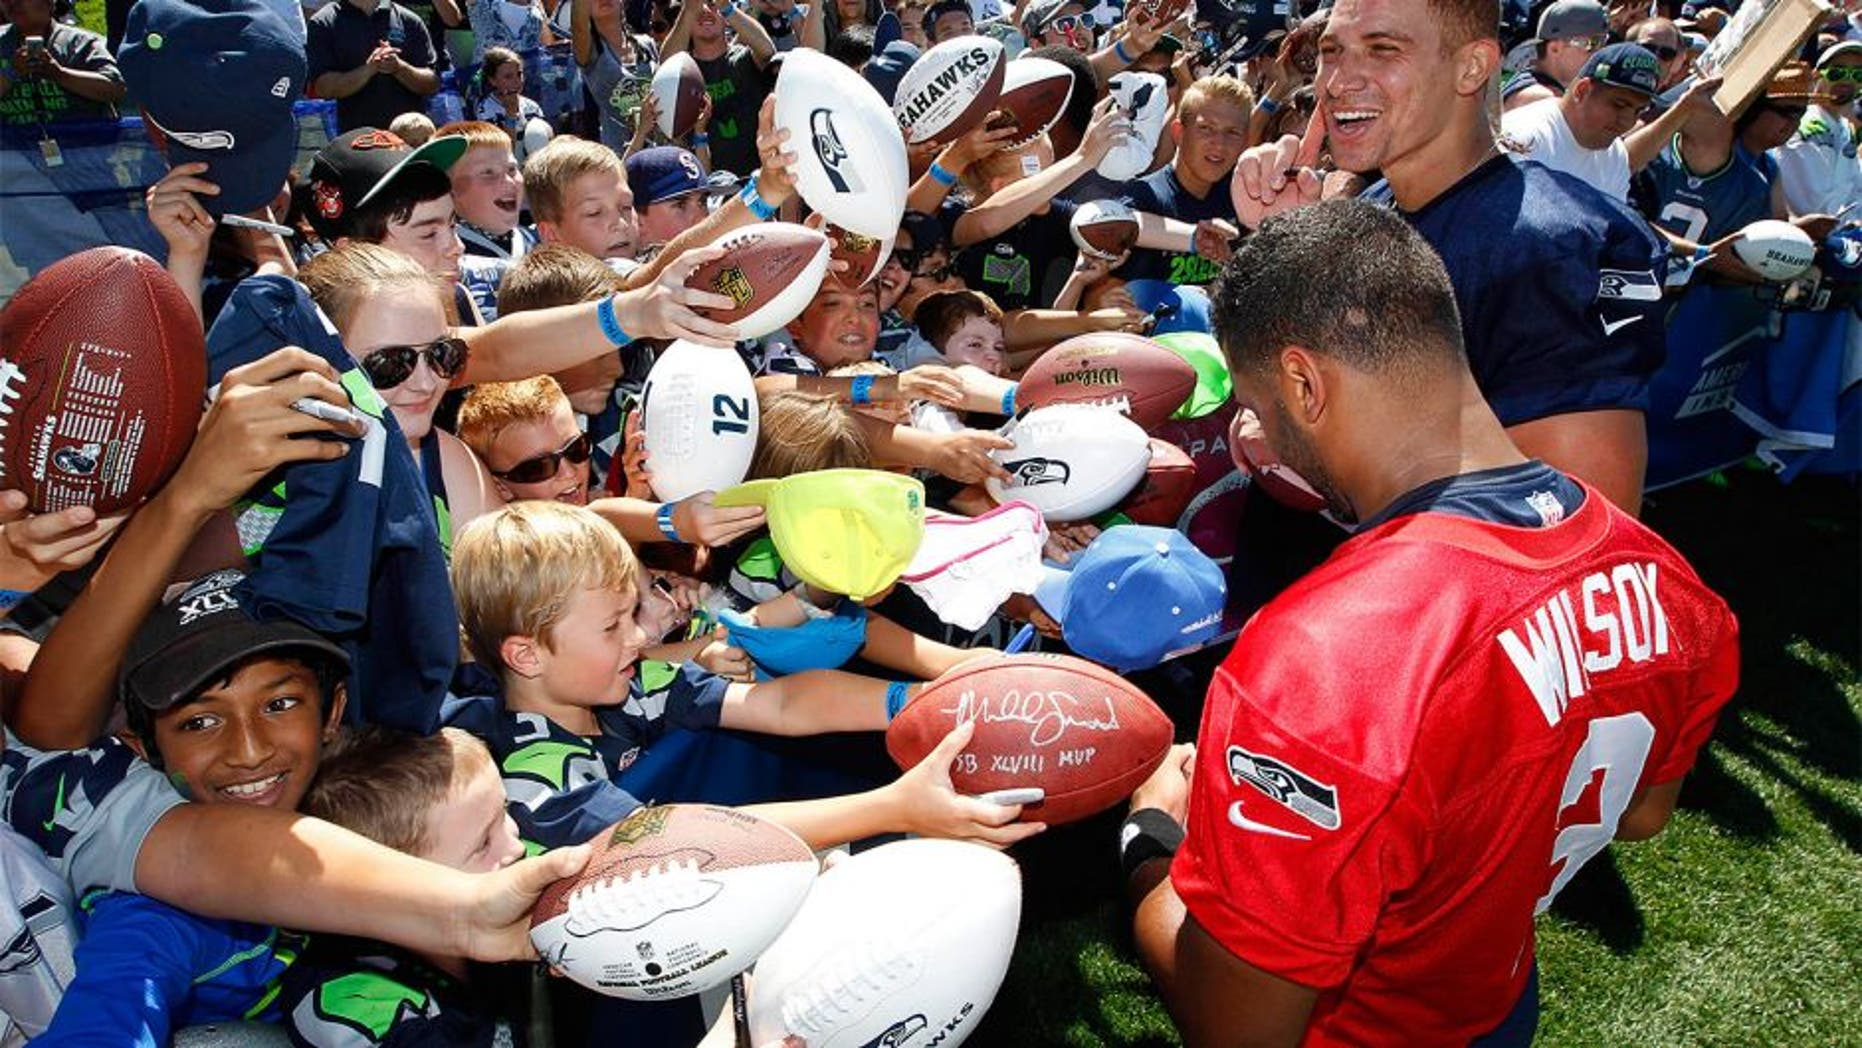 Jul 31, 2015; Renton, WA, USA; Seattle Seahawks quarterback Russell Wilson (3) and tight end Jimmy Graham (88) sign autographs following training camp practice at Virginia Mason Athletic Center. Mandatory Credit: Joe Nicholson-USA TODAY Sports